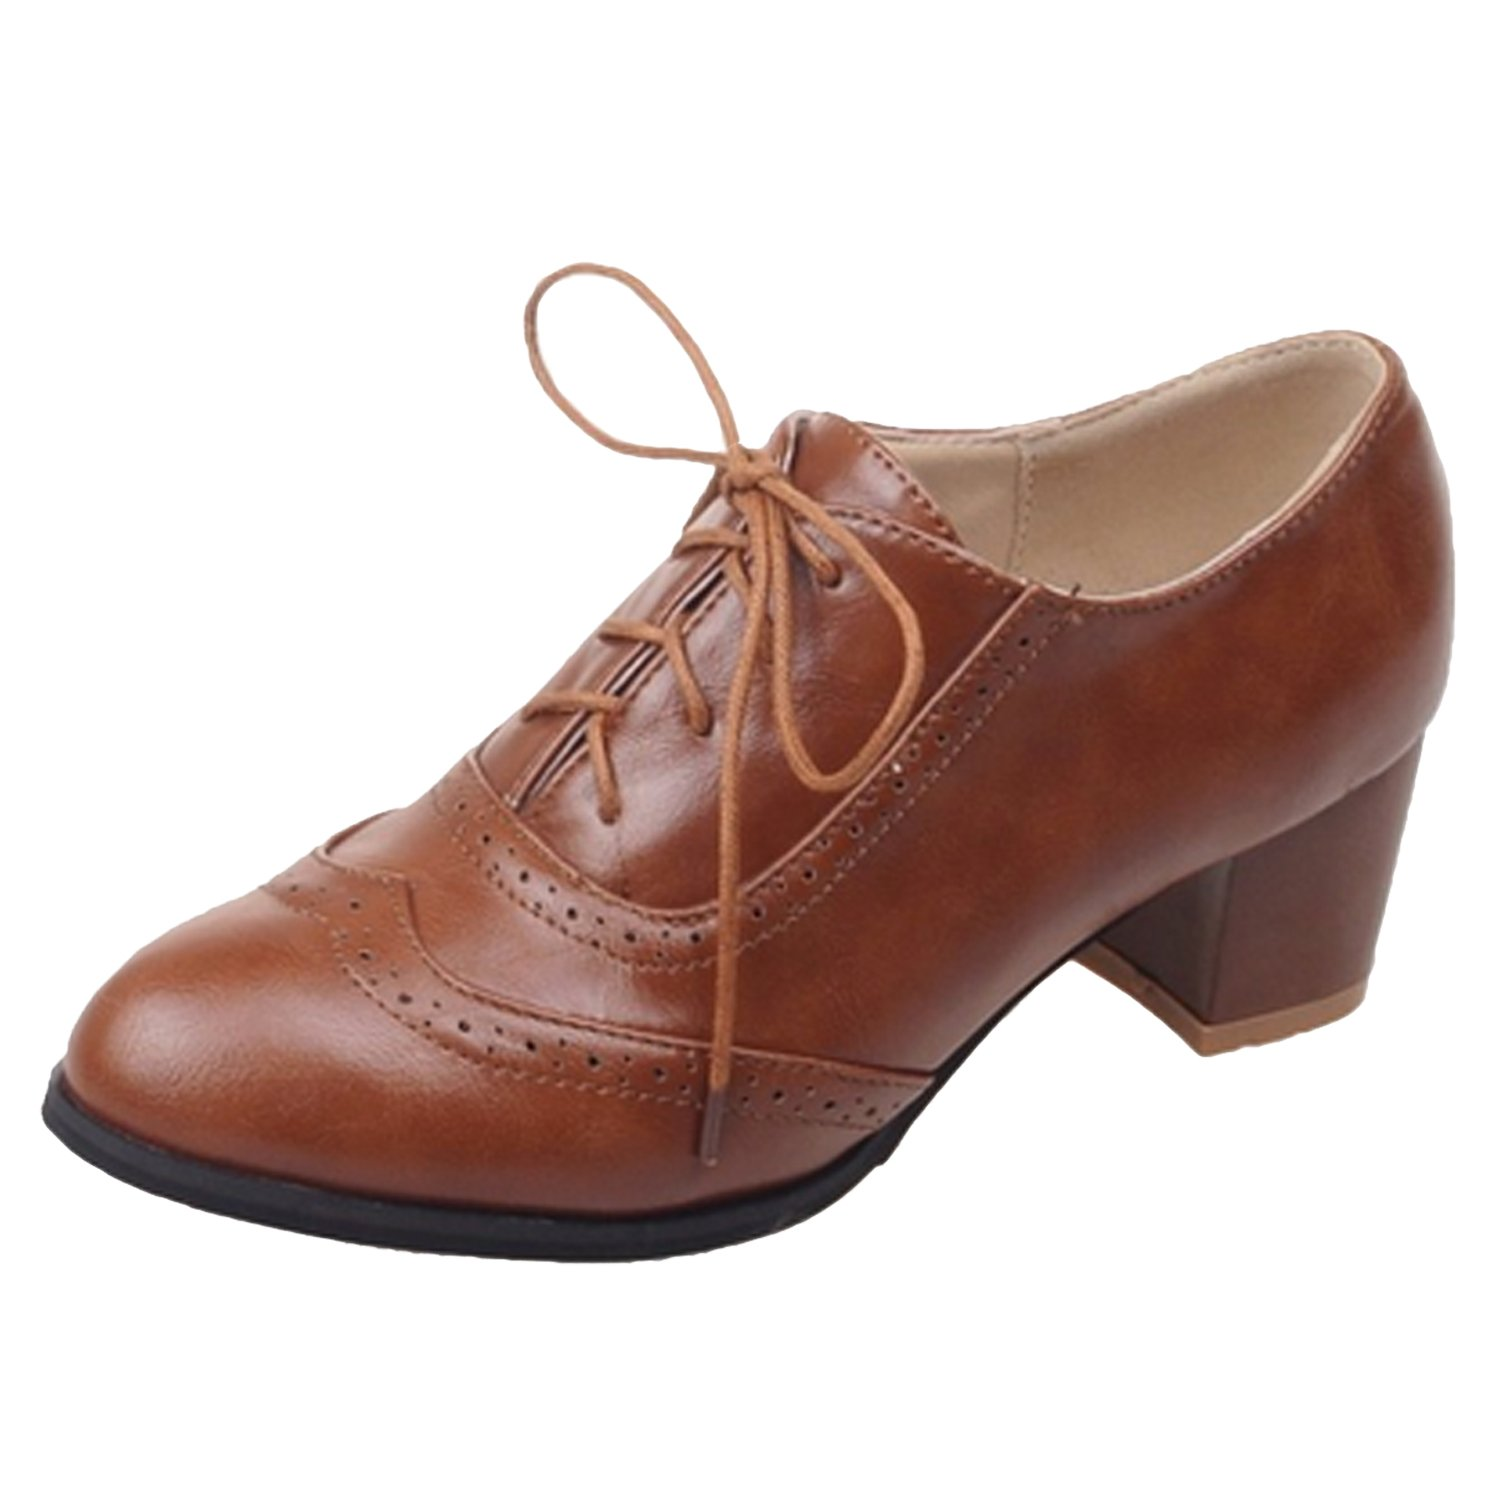 1930s Dresses, Shoes, Lingerie, Clothing UK Womens Heel Oxfords £22.99 AT vintagedancer.com